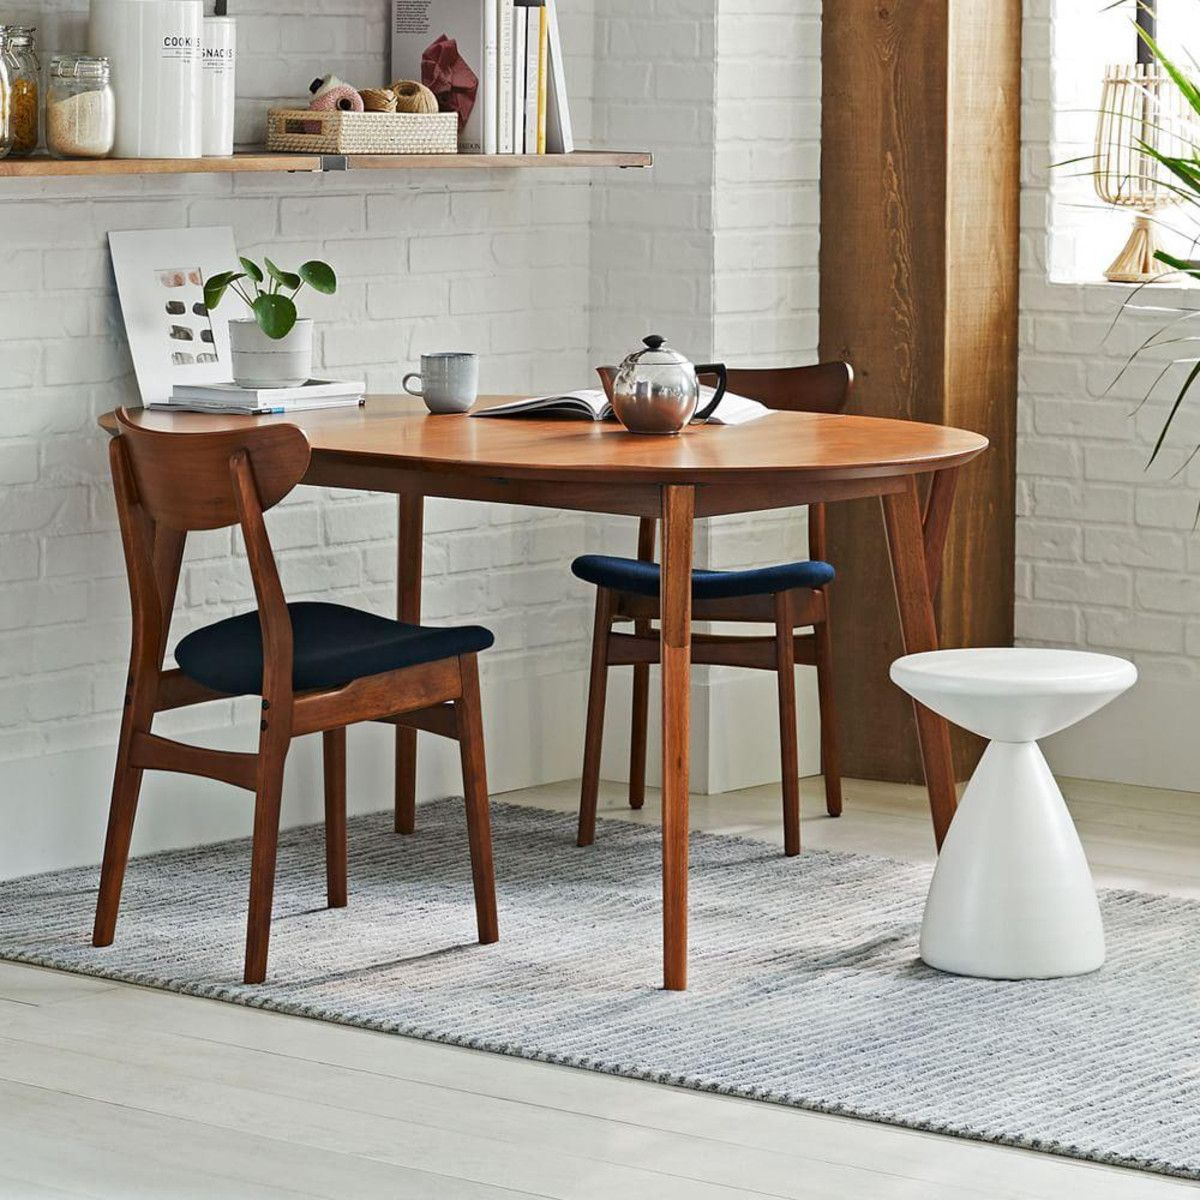 Mid Century Expandable Dining Table Round In 2020 Expandable